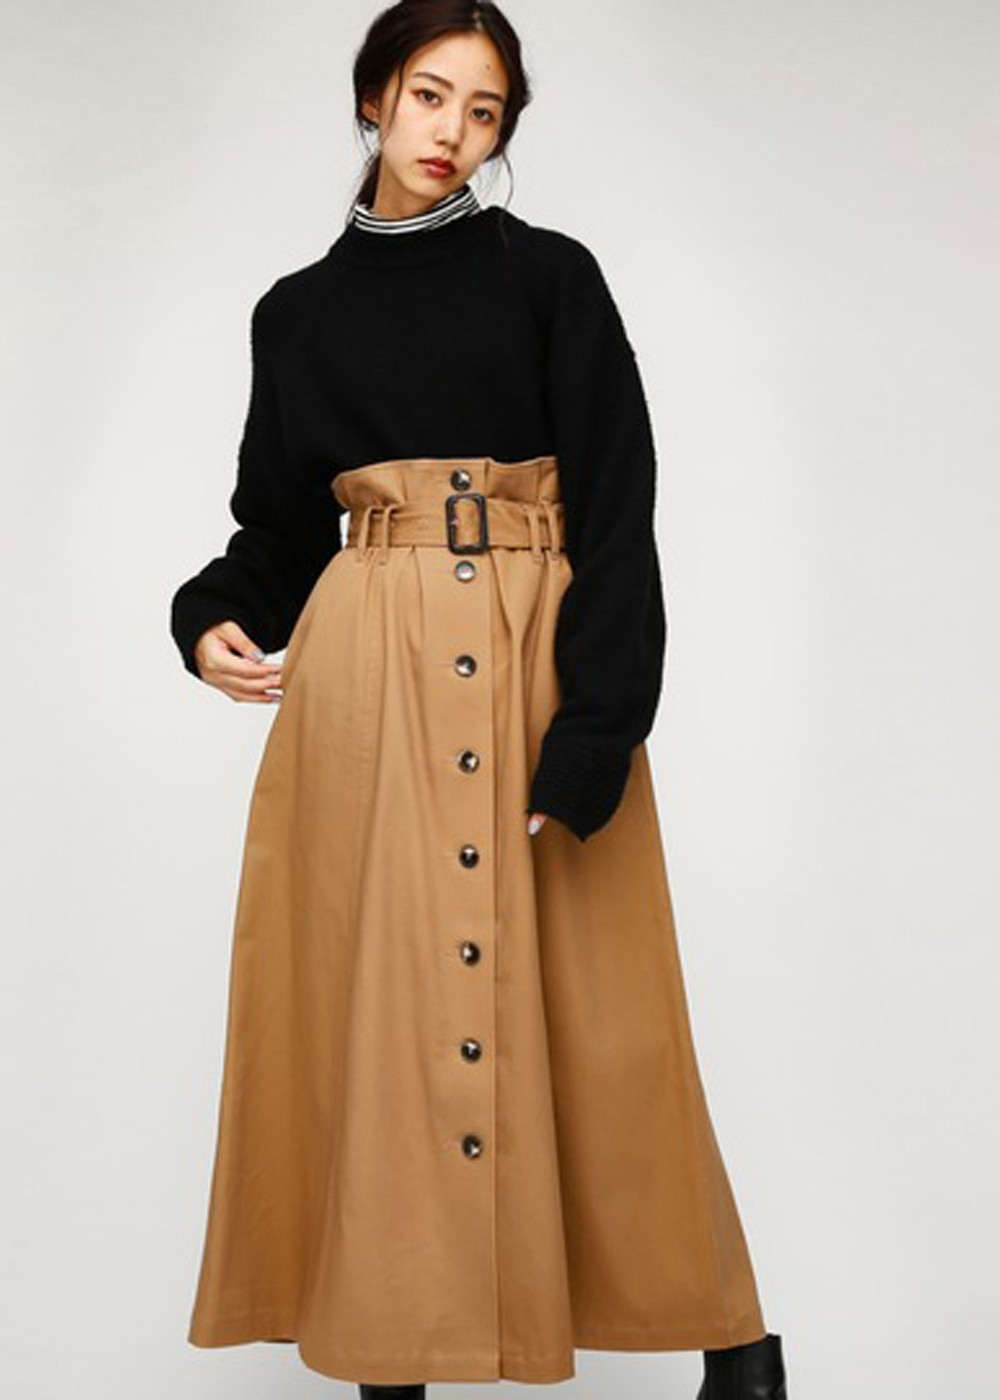 【最大60%OFF】FRONT BUTTON LONG SKIRT|L/BEG|ロングスカート|MOUSSY